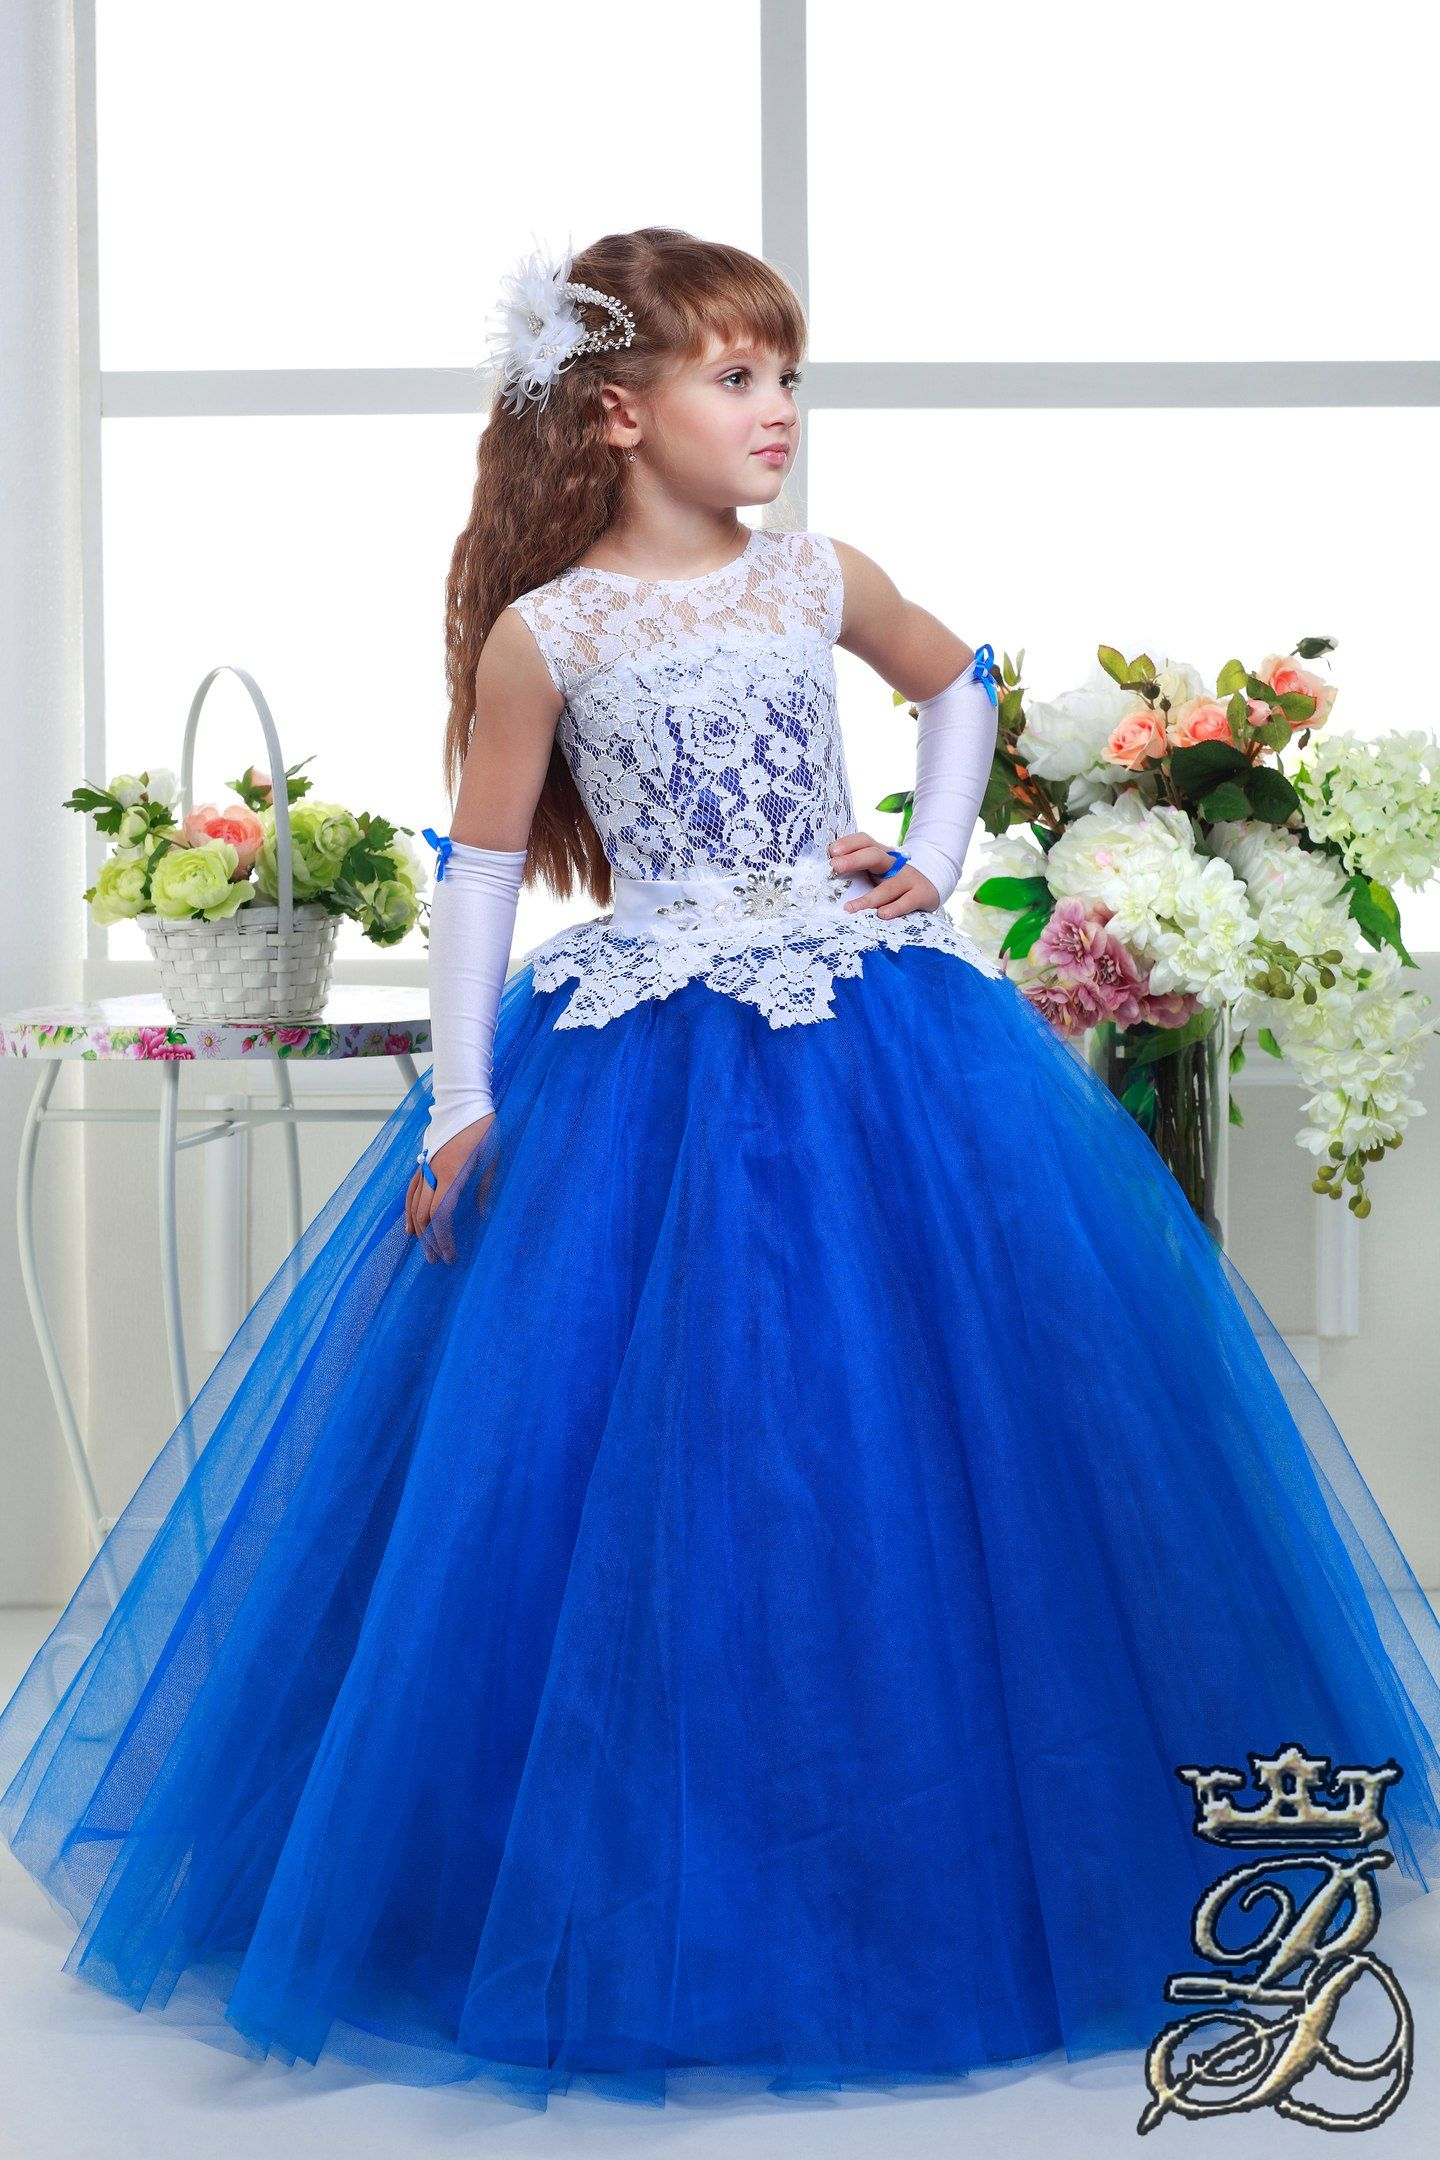 Pin by lilia lisaveta on kids couture pinterest baby princess